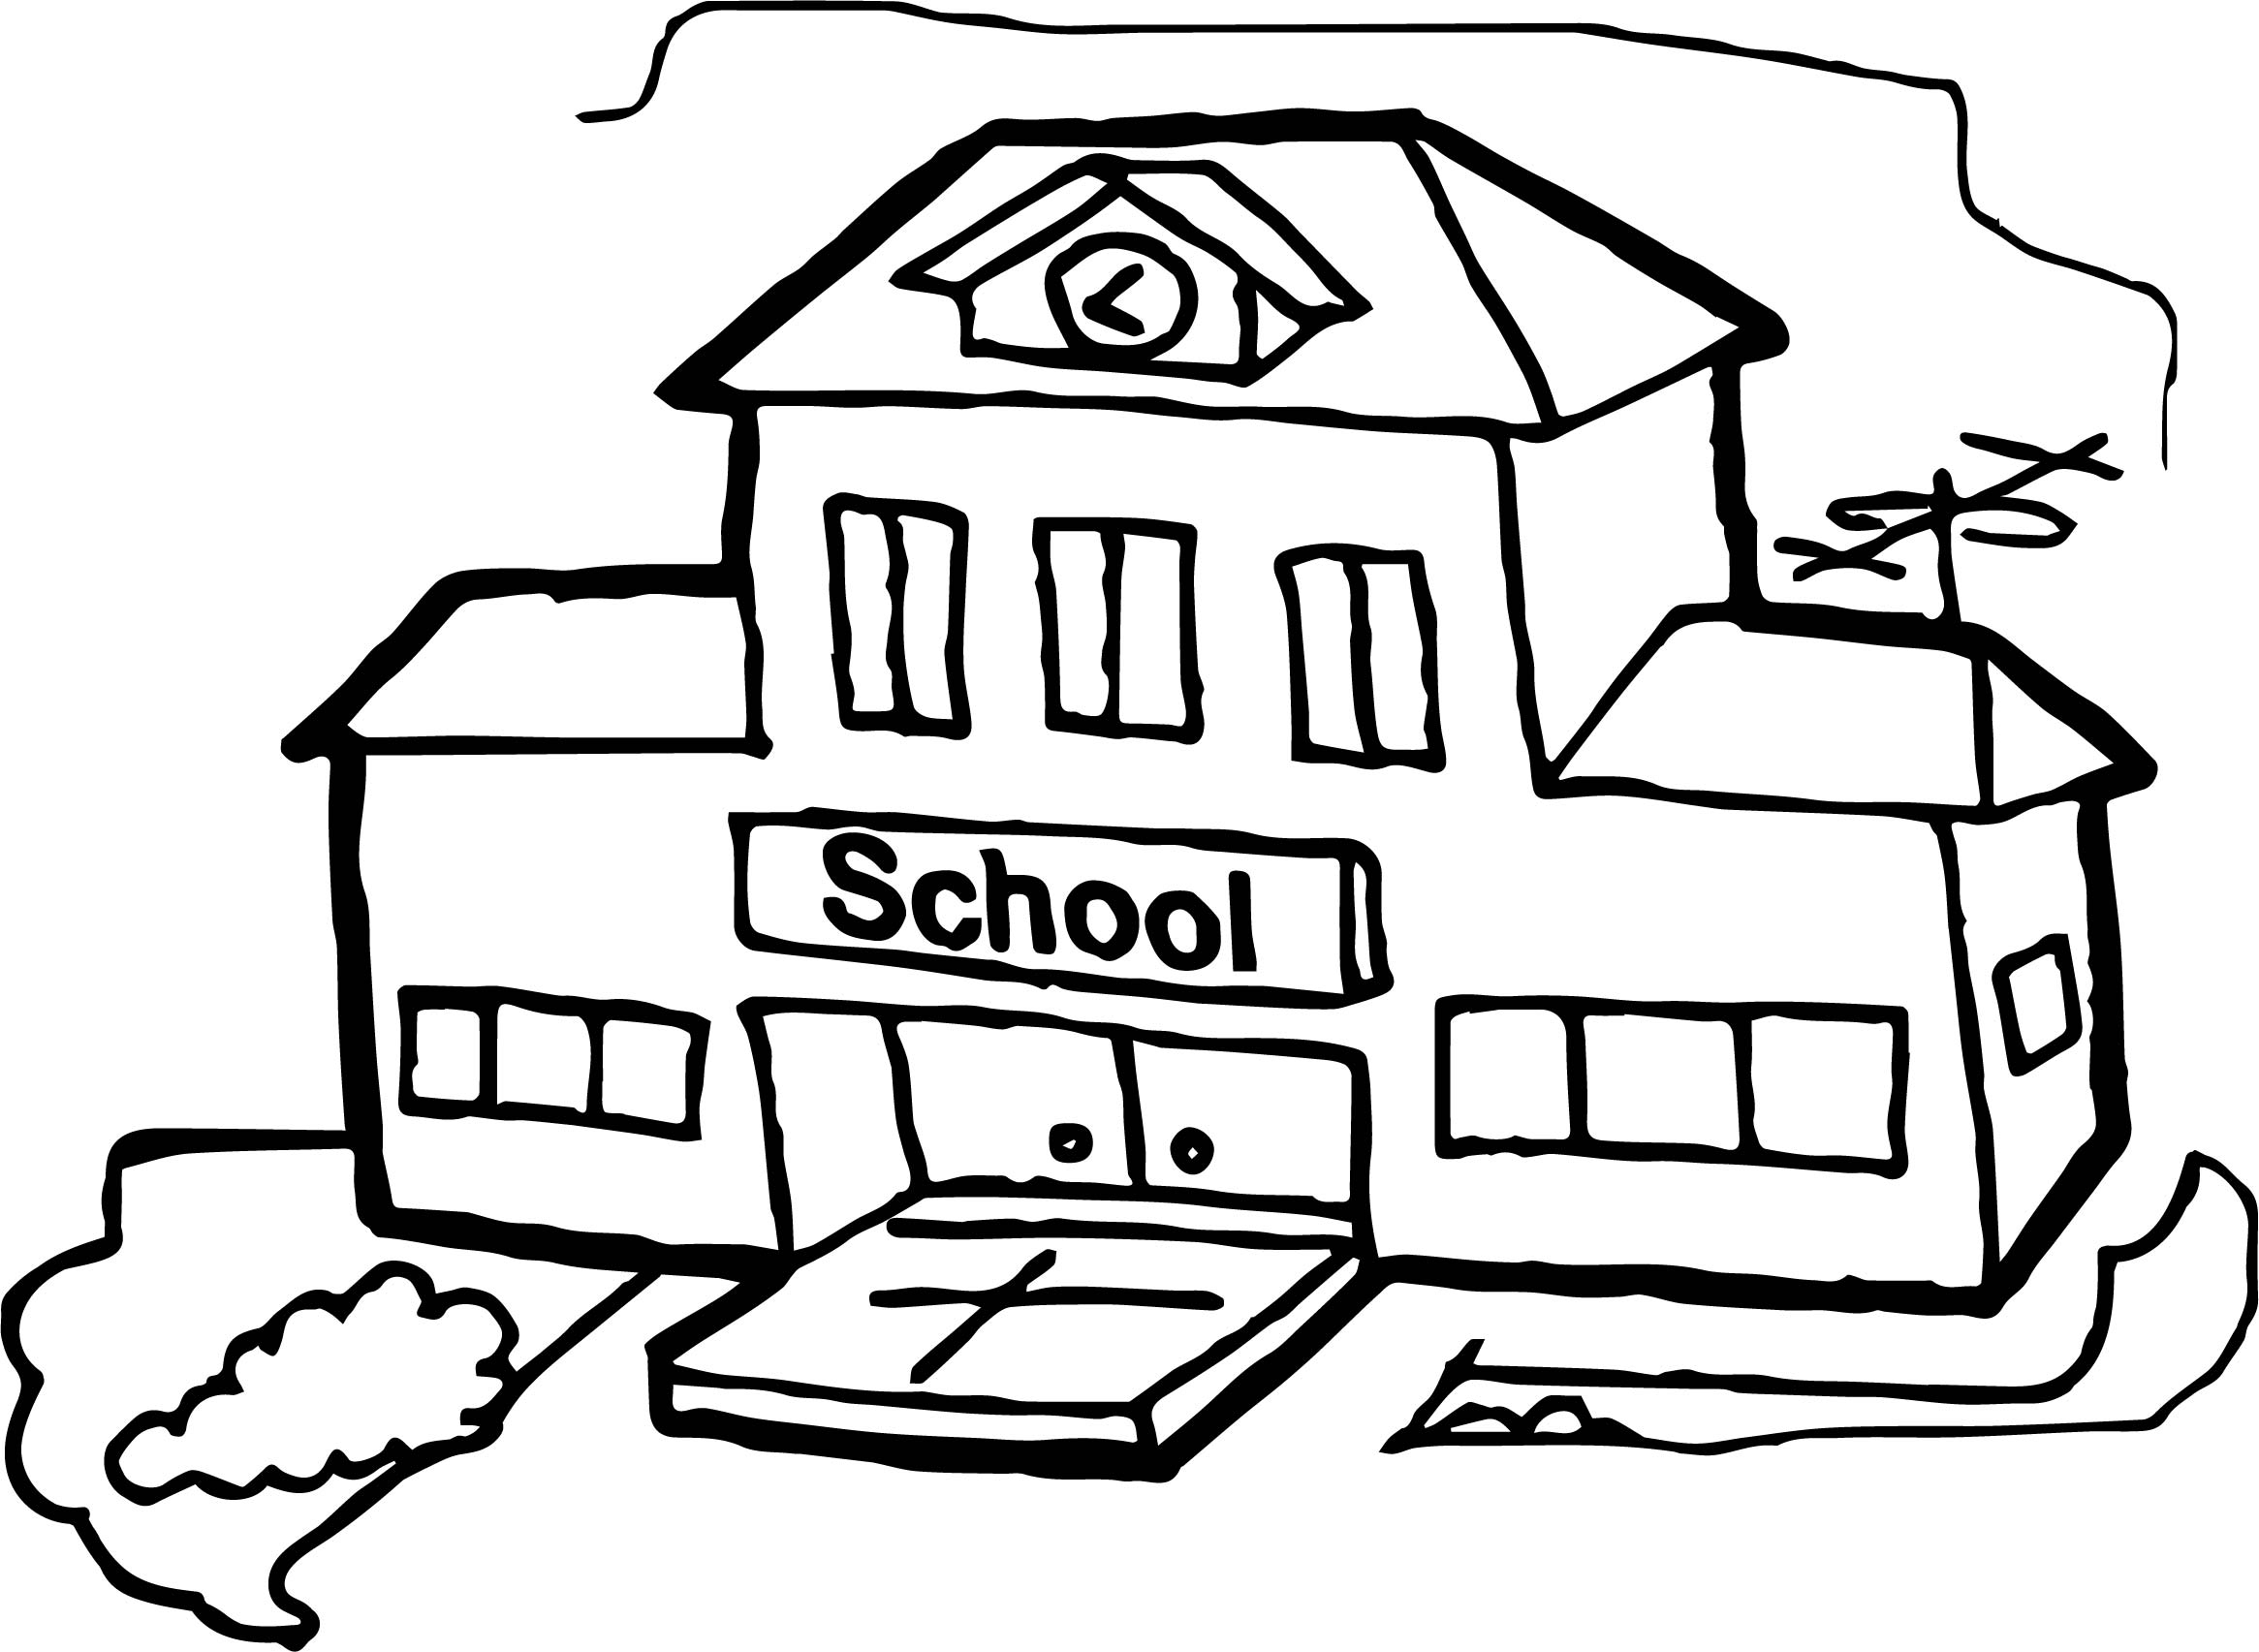 Simple School House Coloring Pages Real Pictures Of Rudolph the Red Collection Of School Coloring Pages with 35 Coloring Page A School Small School Collection